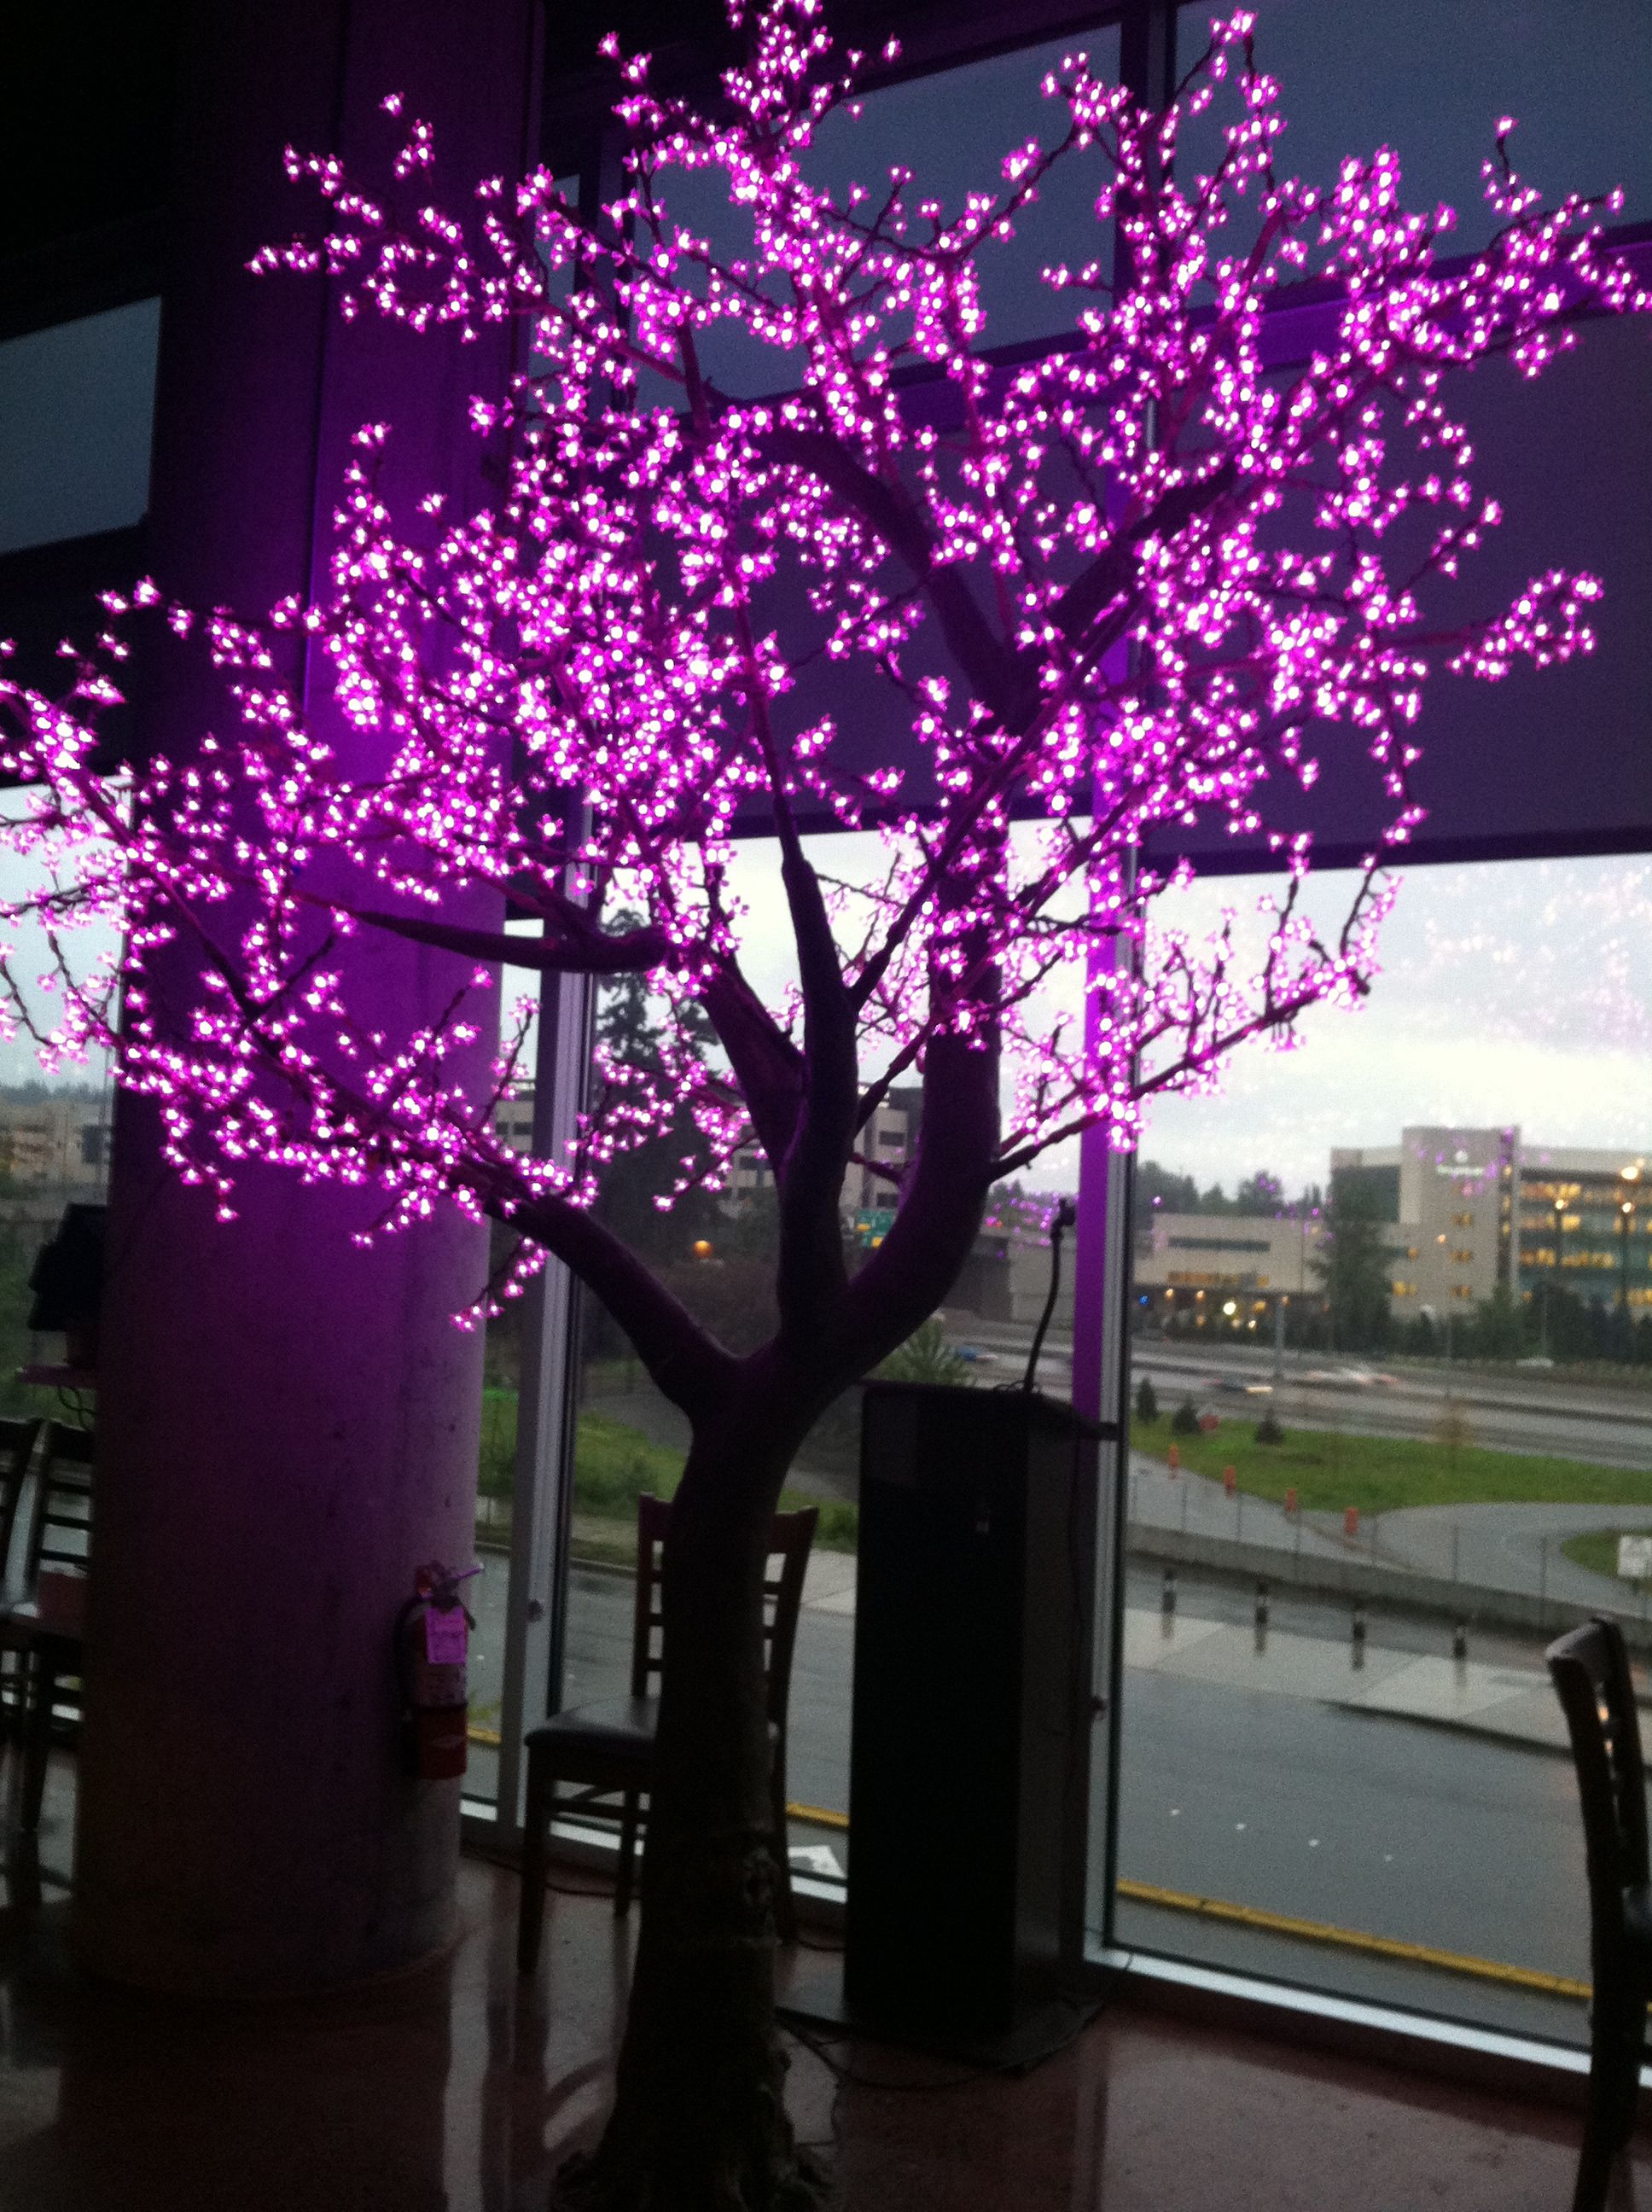 I need this light tree so bad it's not even funny...